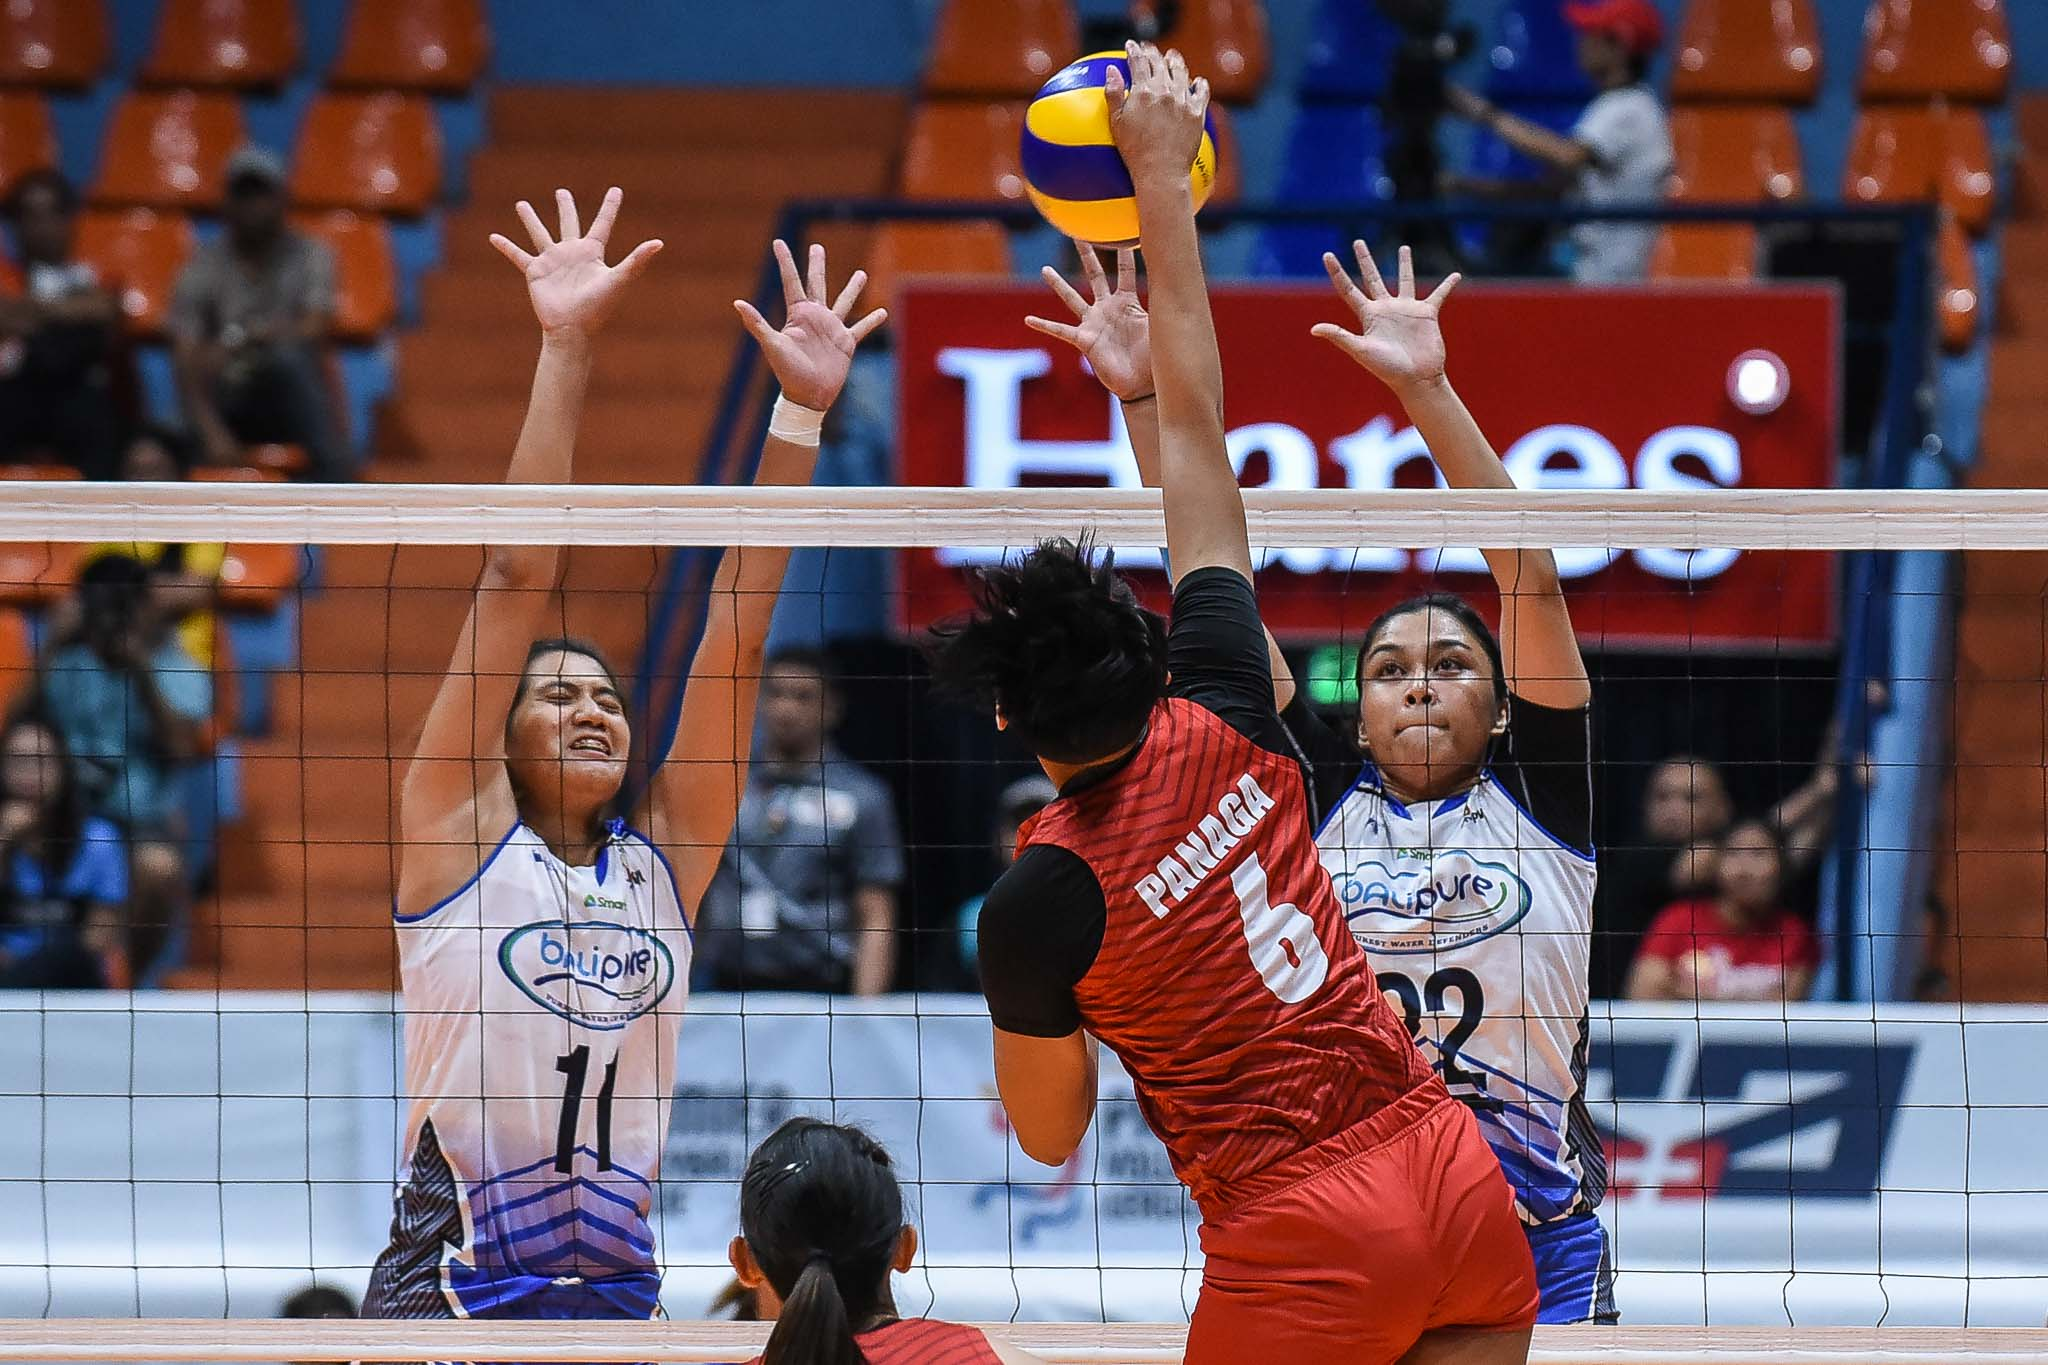 PVL-Open-Conference-2019-Petrogazz-vs.-Balipure-Salamagos-Bombita-1123 Graze Bombita excited to lead young BaliPure in stacked PVL field News PVL Volleyball  - philippine sports news